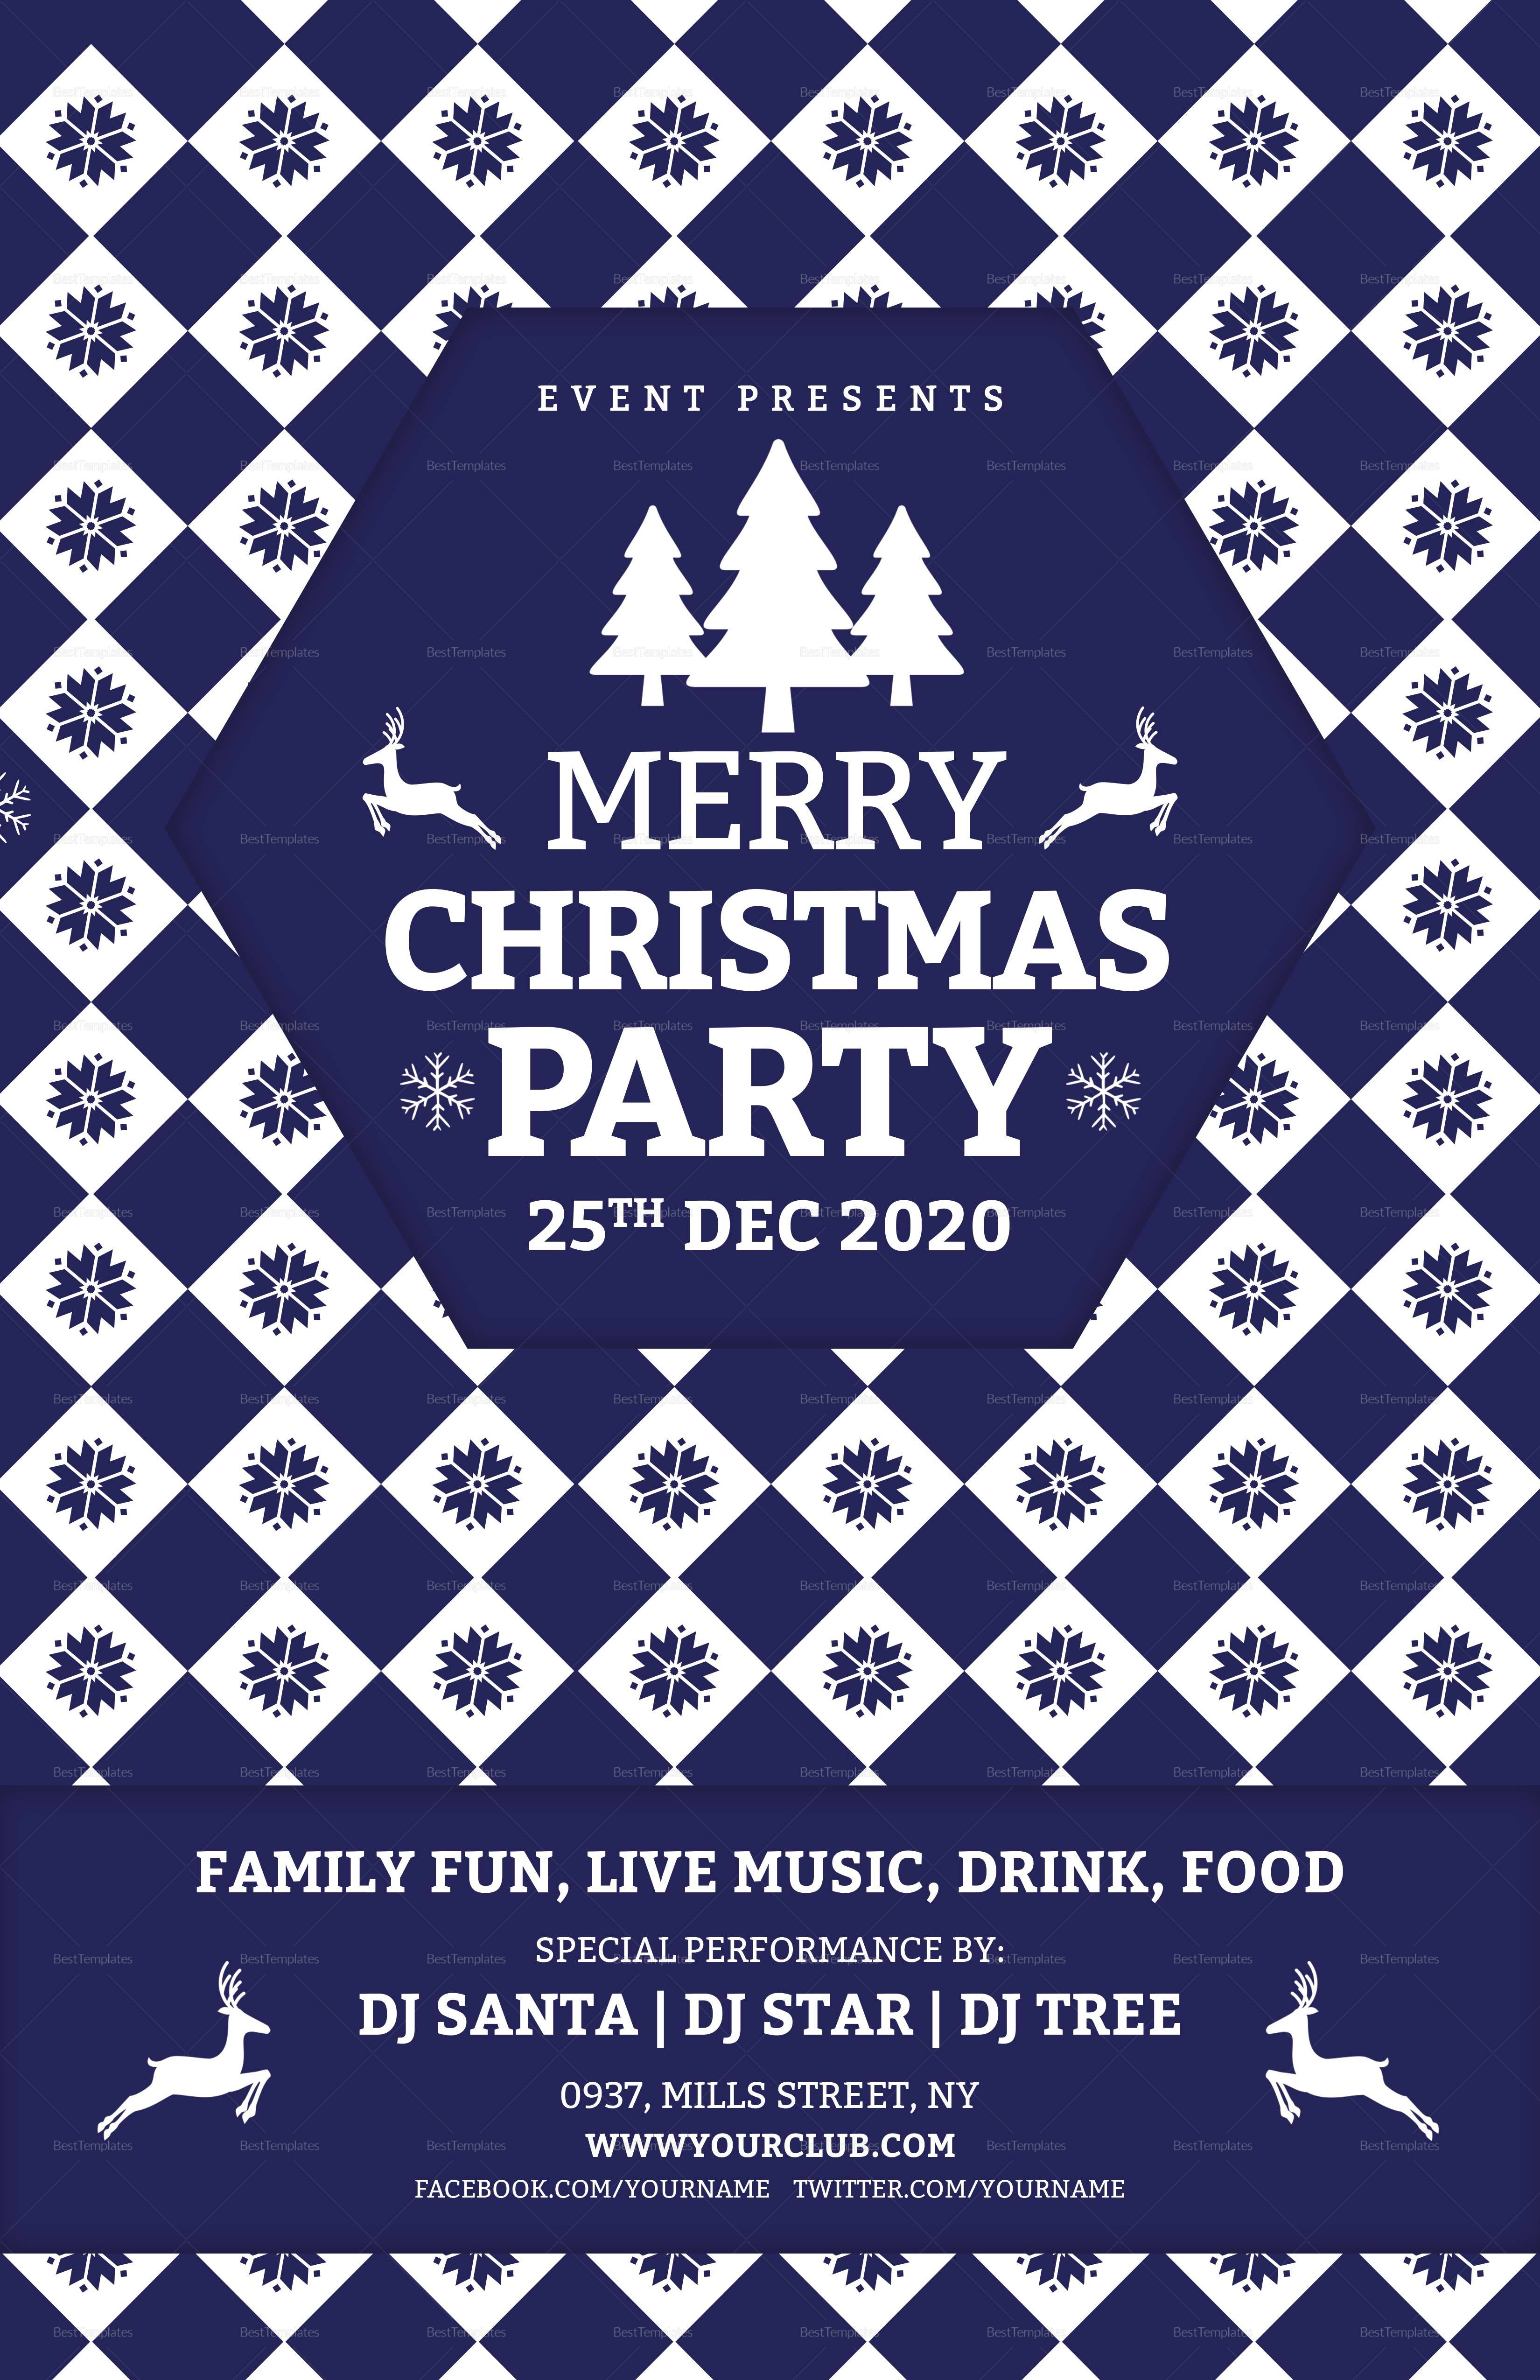 Christmas Party Poster.Colorful Christmas Party Poster